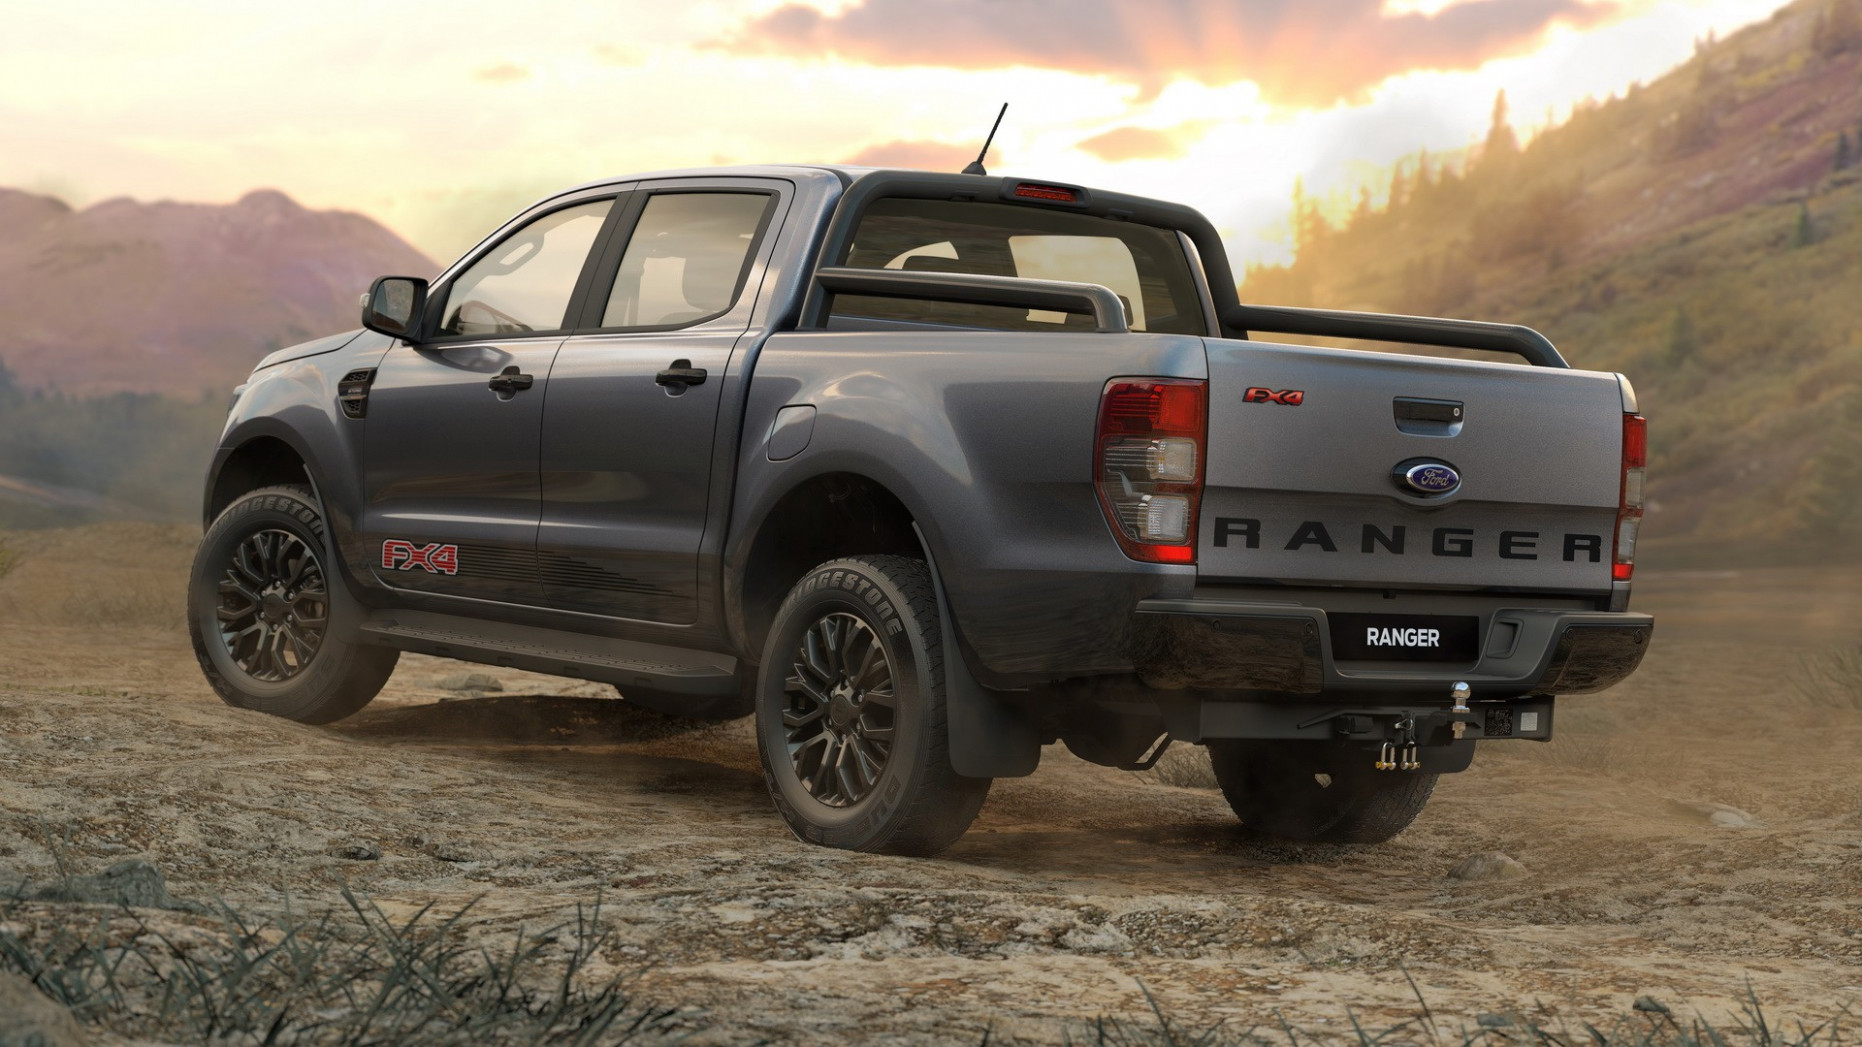 6 Ford Ranger Welcomes FX6 Special Edition In Australia ..